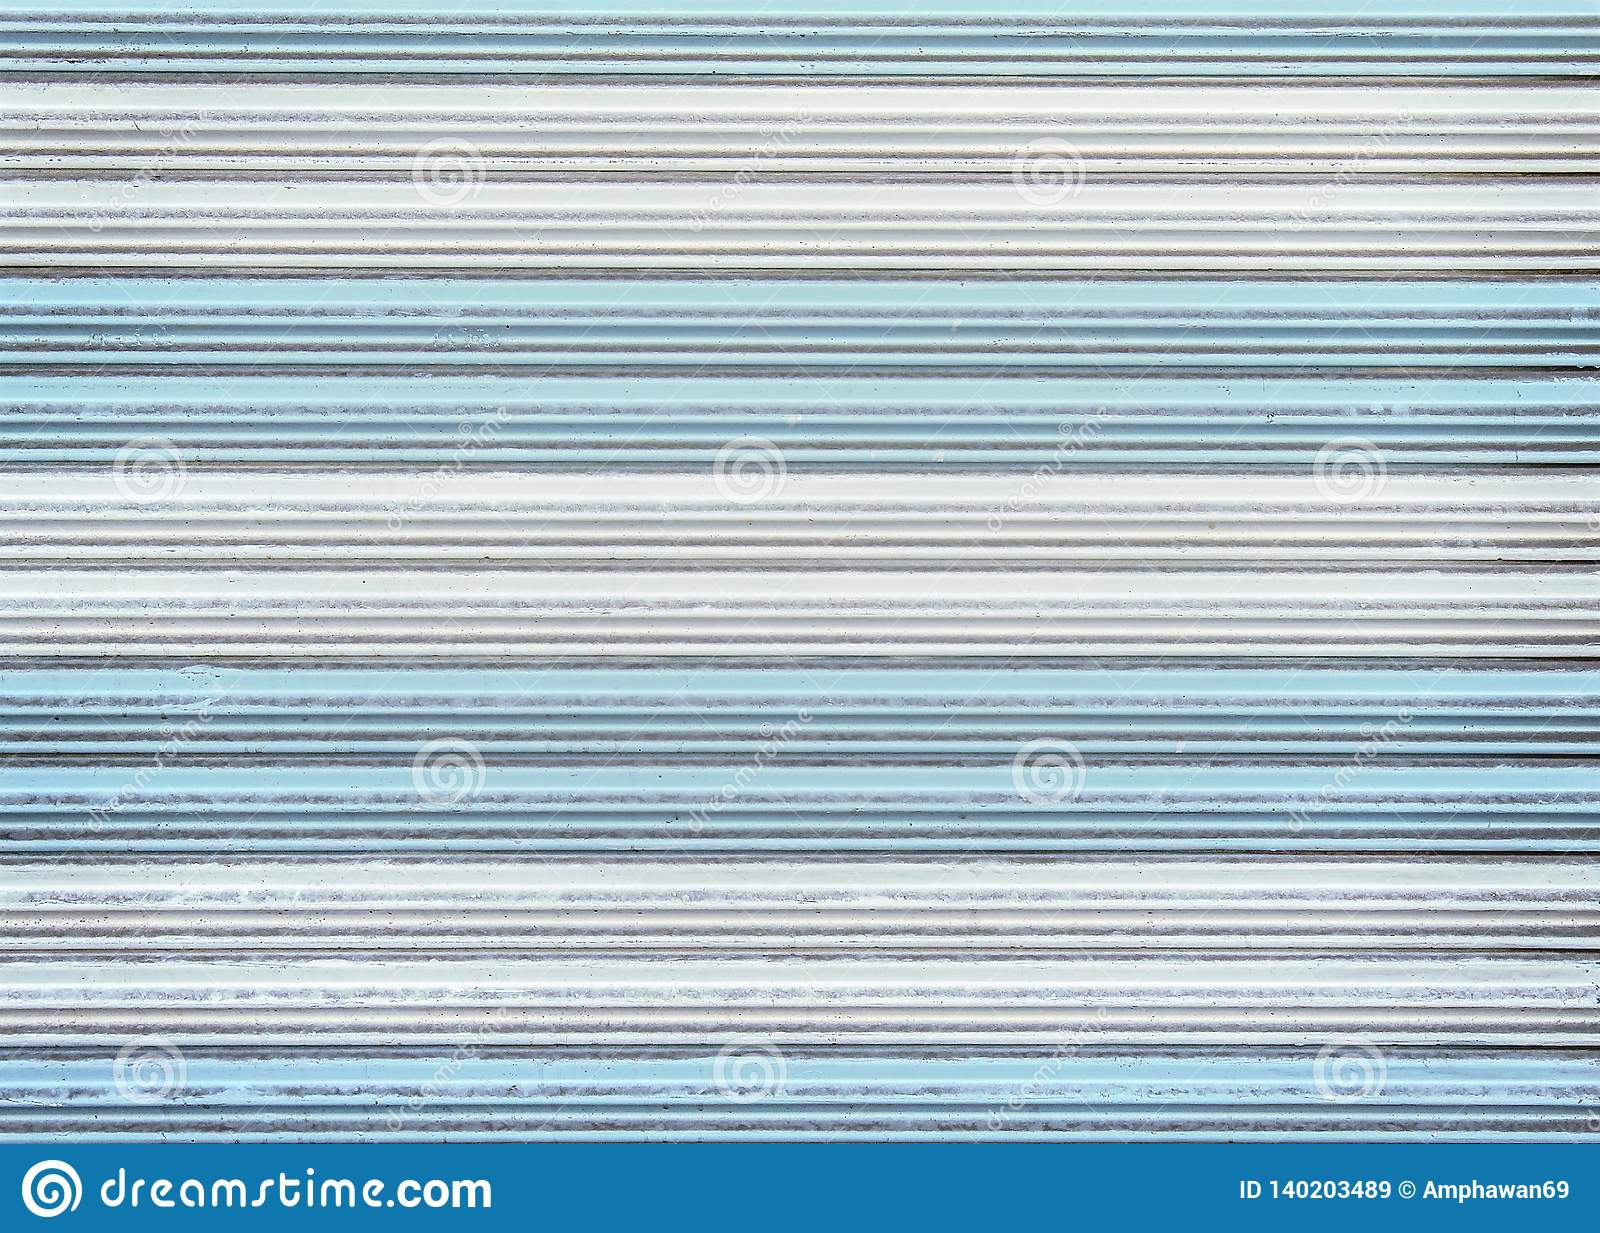 Patterns of colorful old white and blue rolling steel door texture or roller shutter door for background